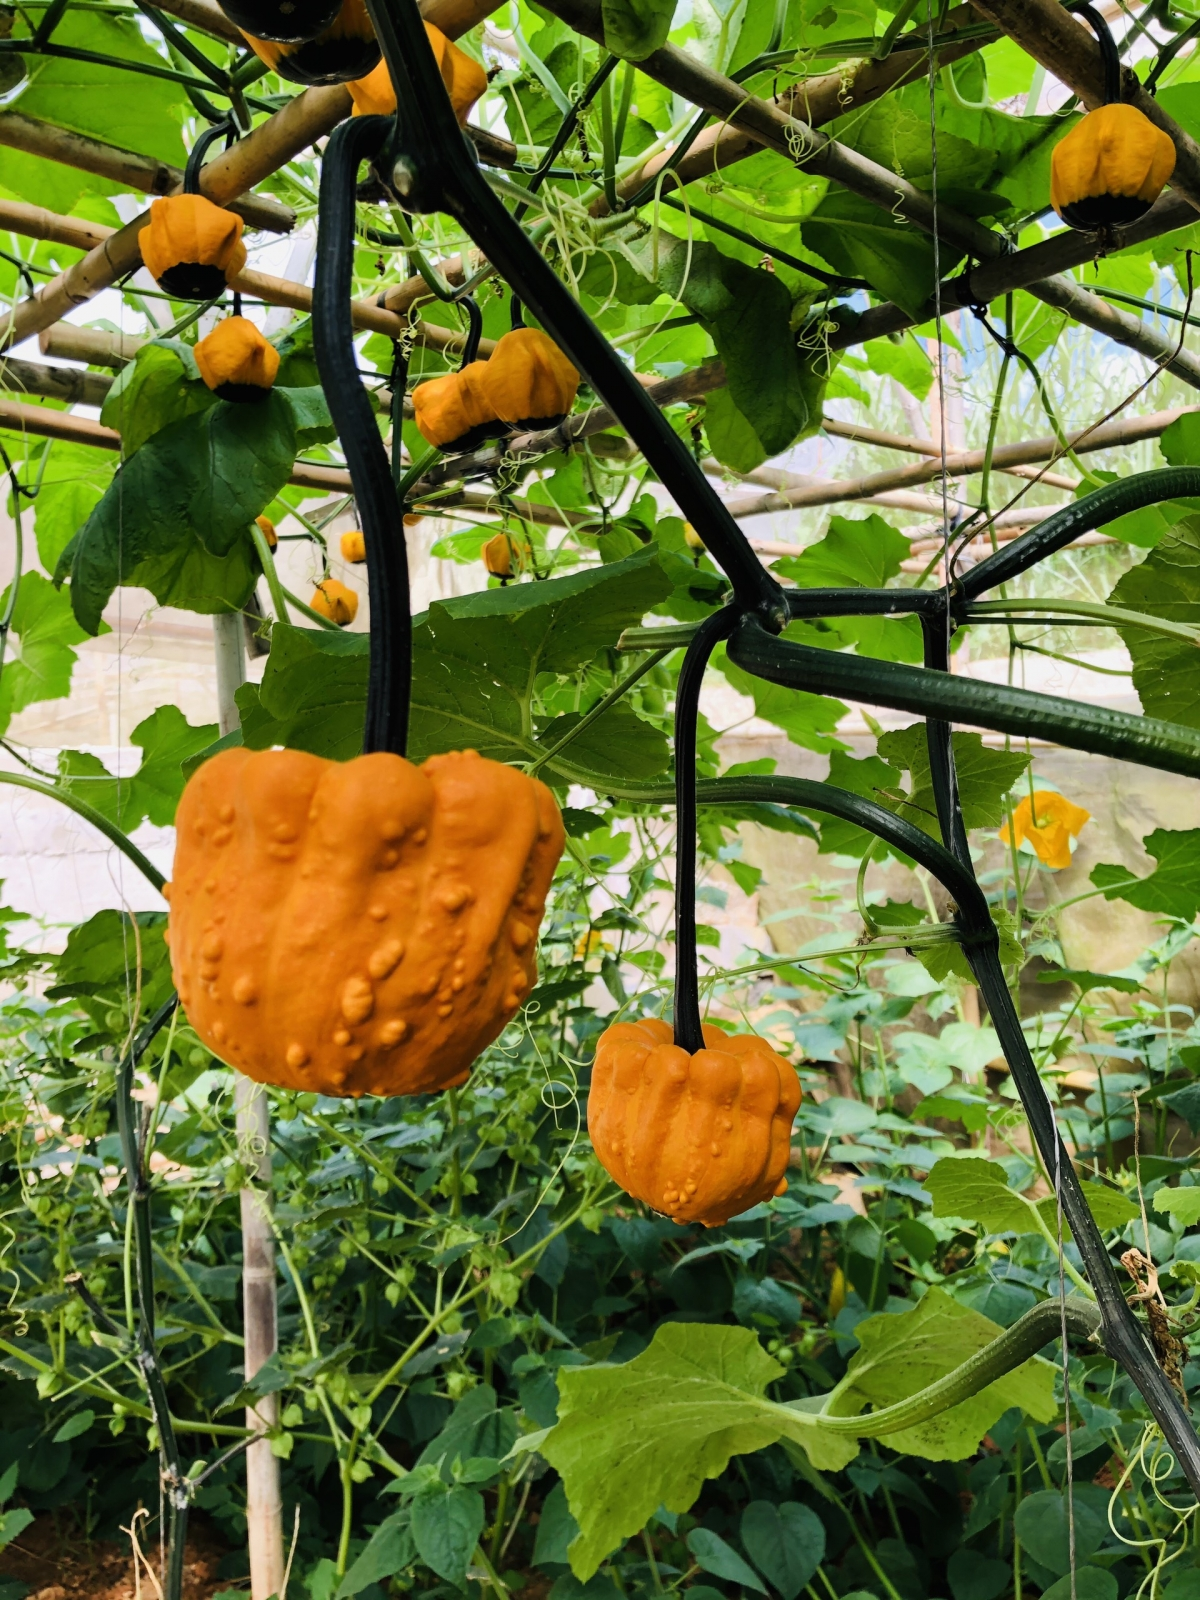 These pumpkins are typically ordered by hotels and restaurants nationwide.